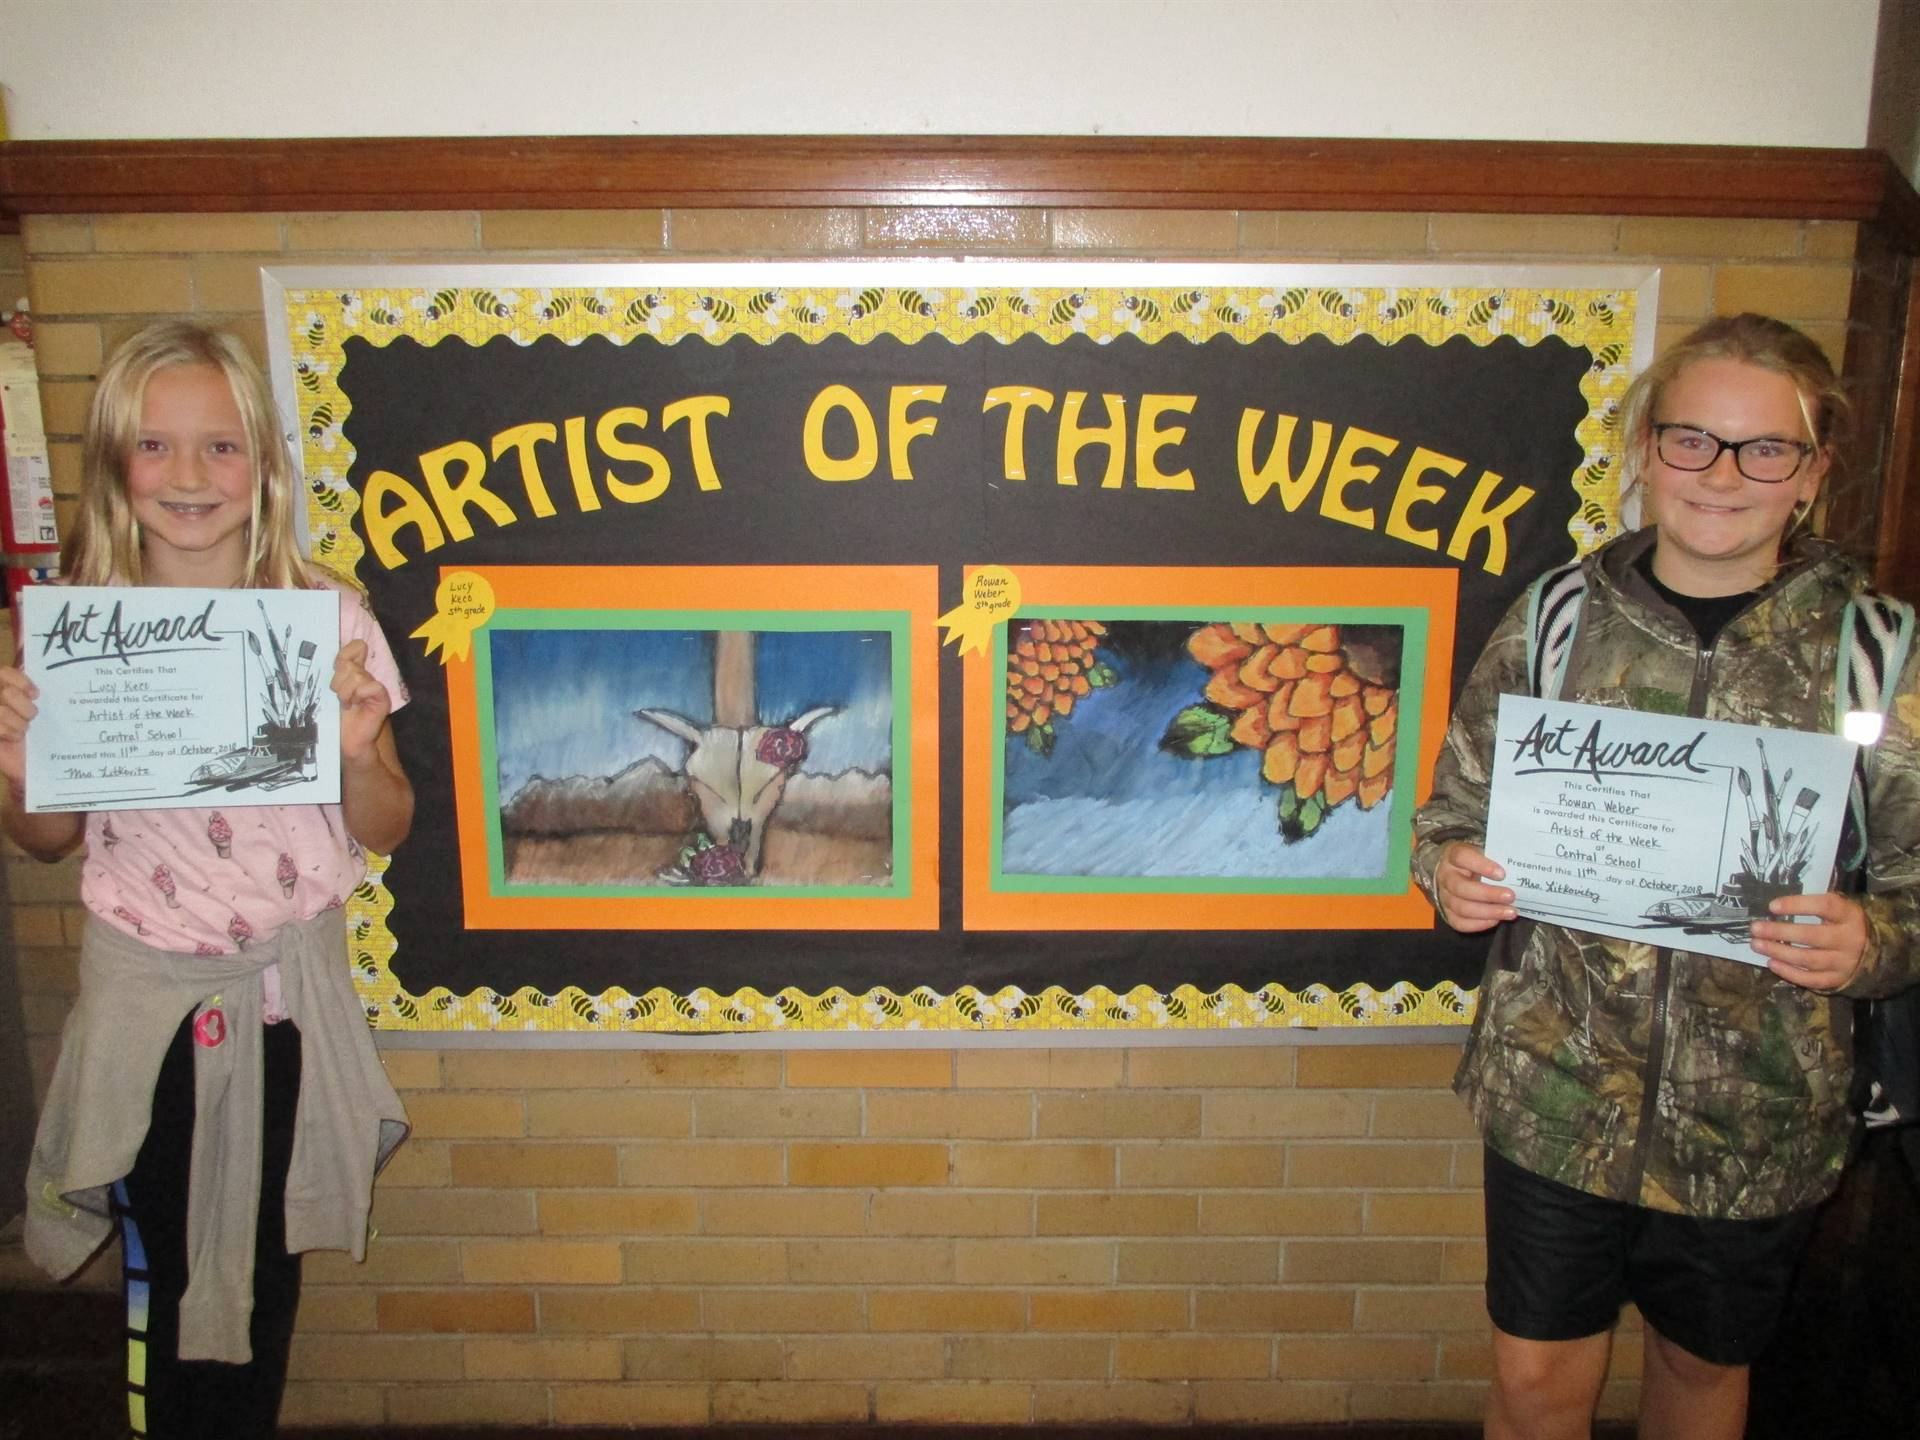 Artists of the Week